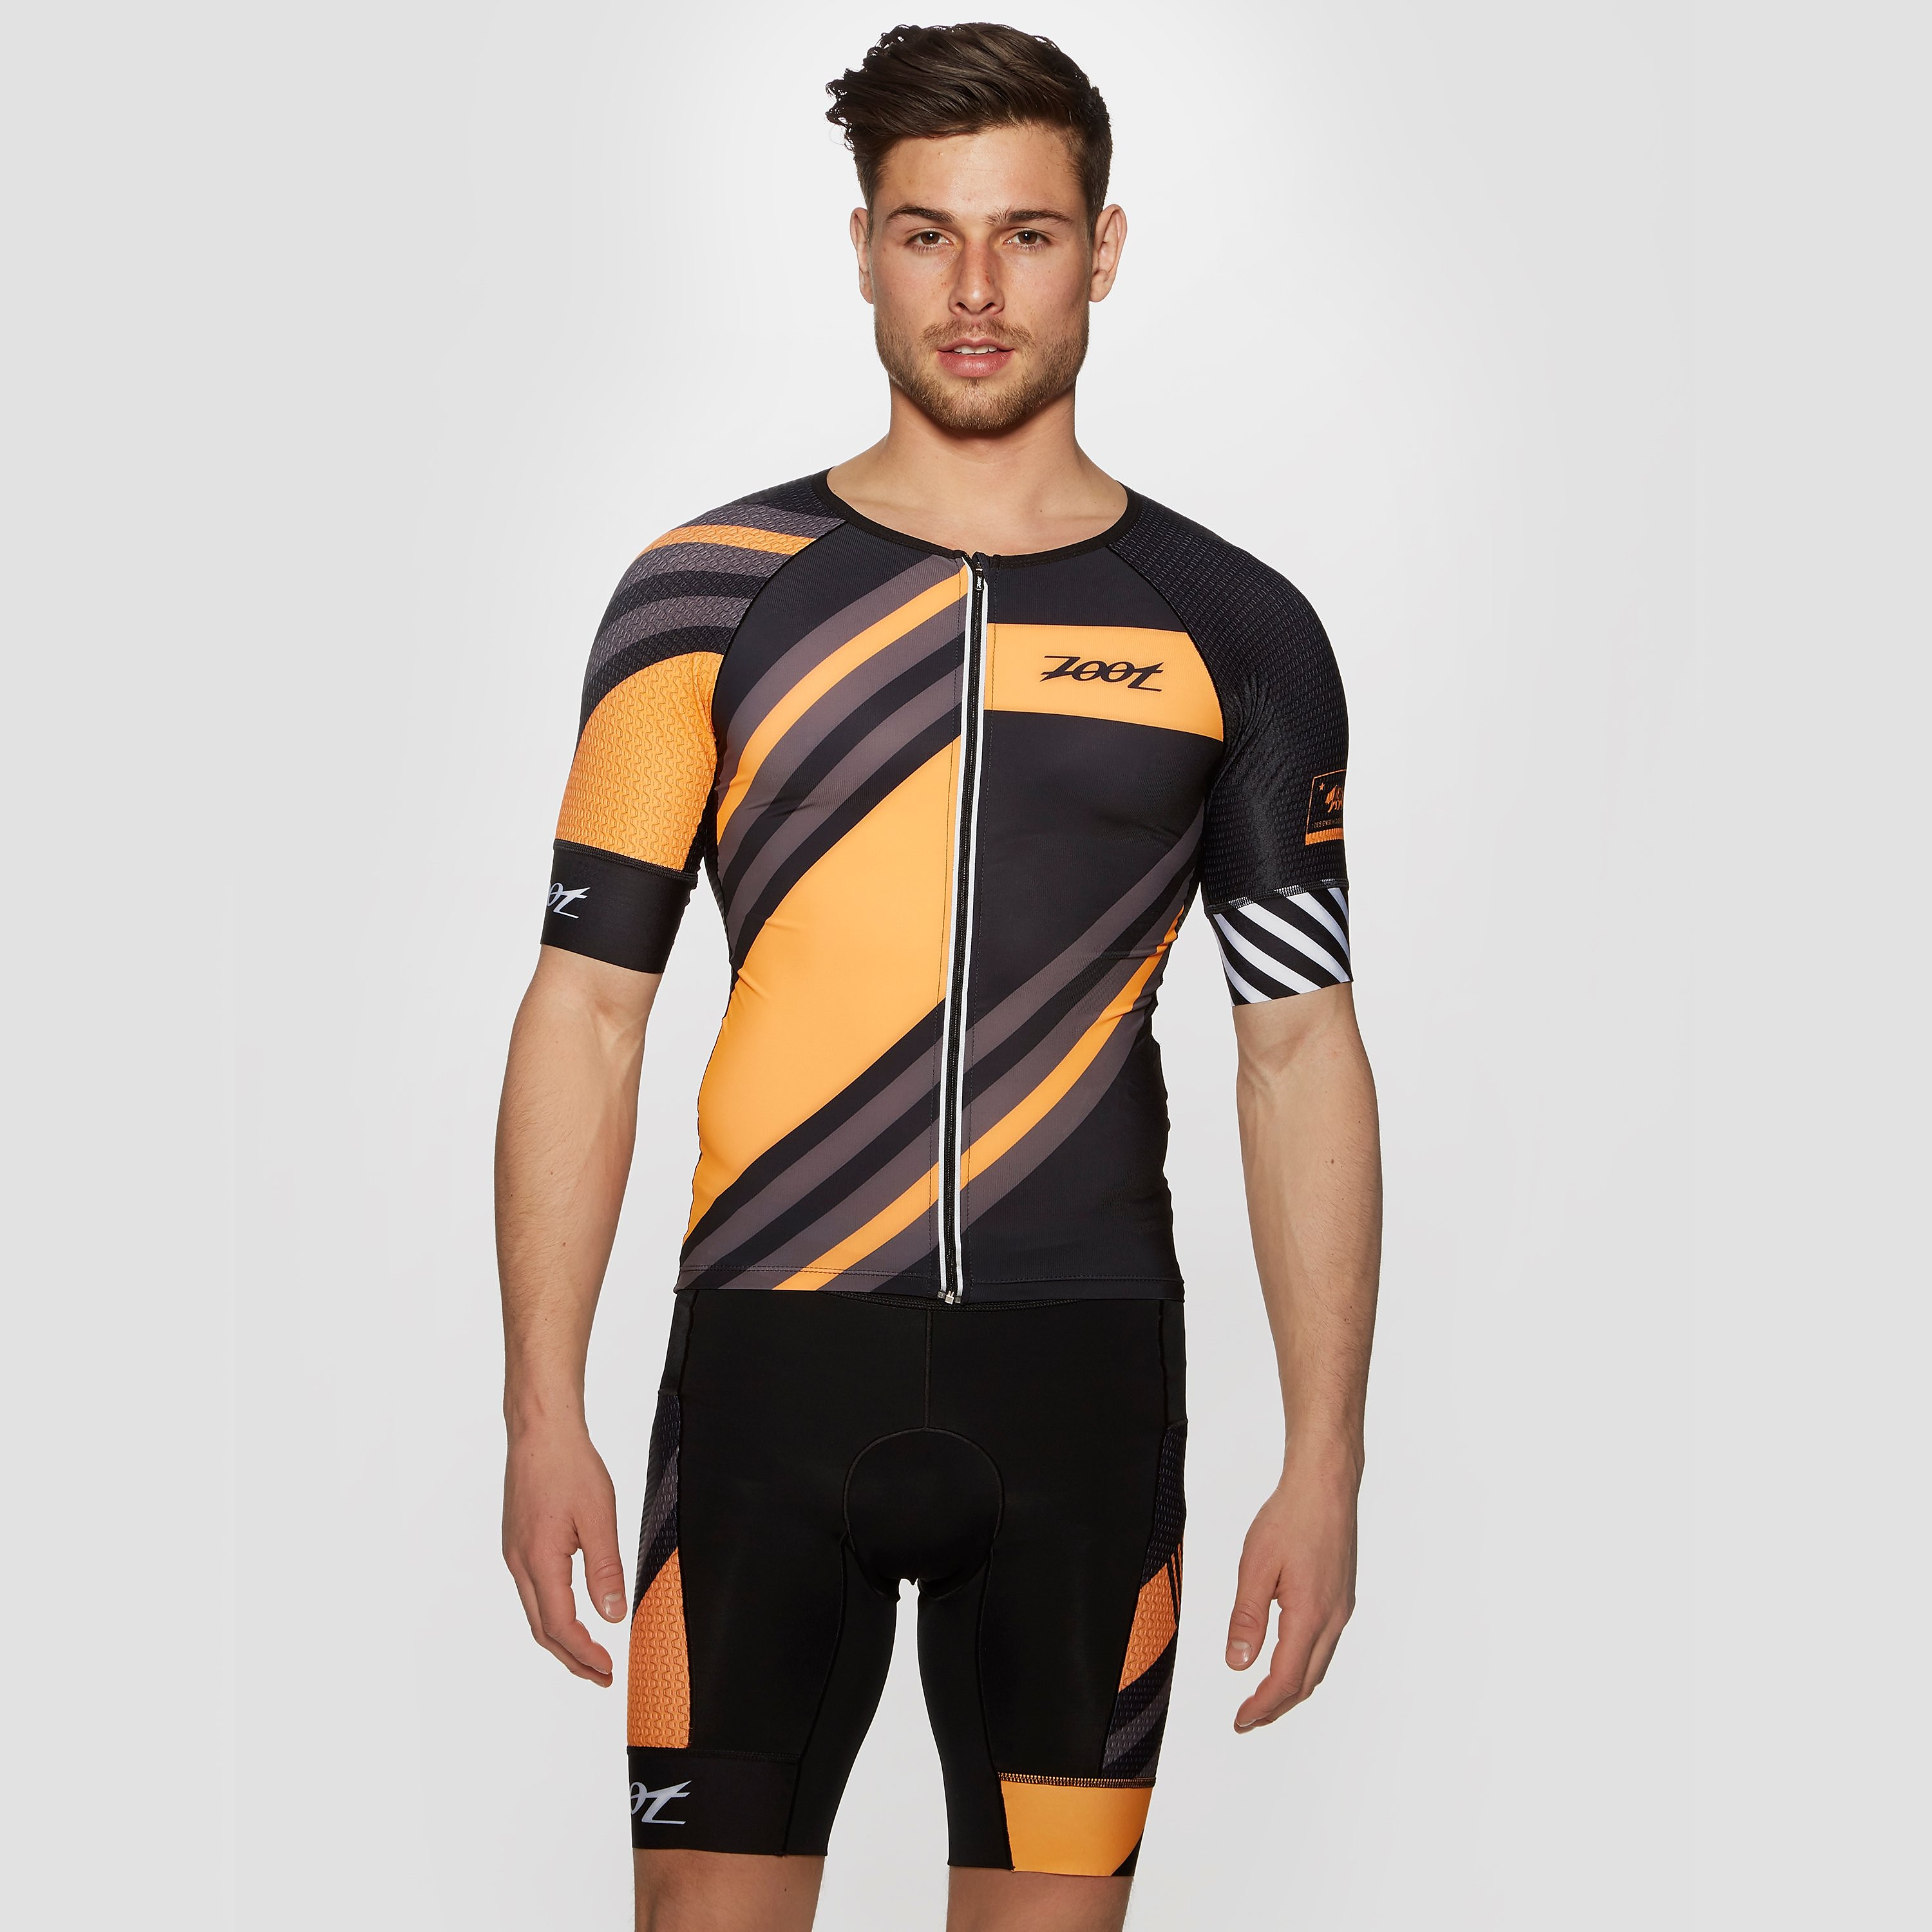 Zoot Ultra Tri Aero Men's Triathlon Top